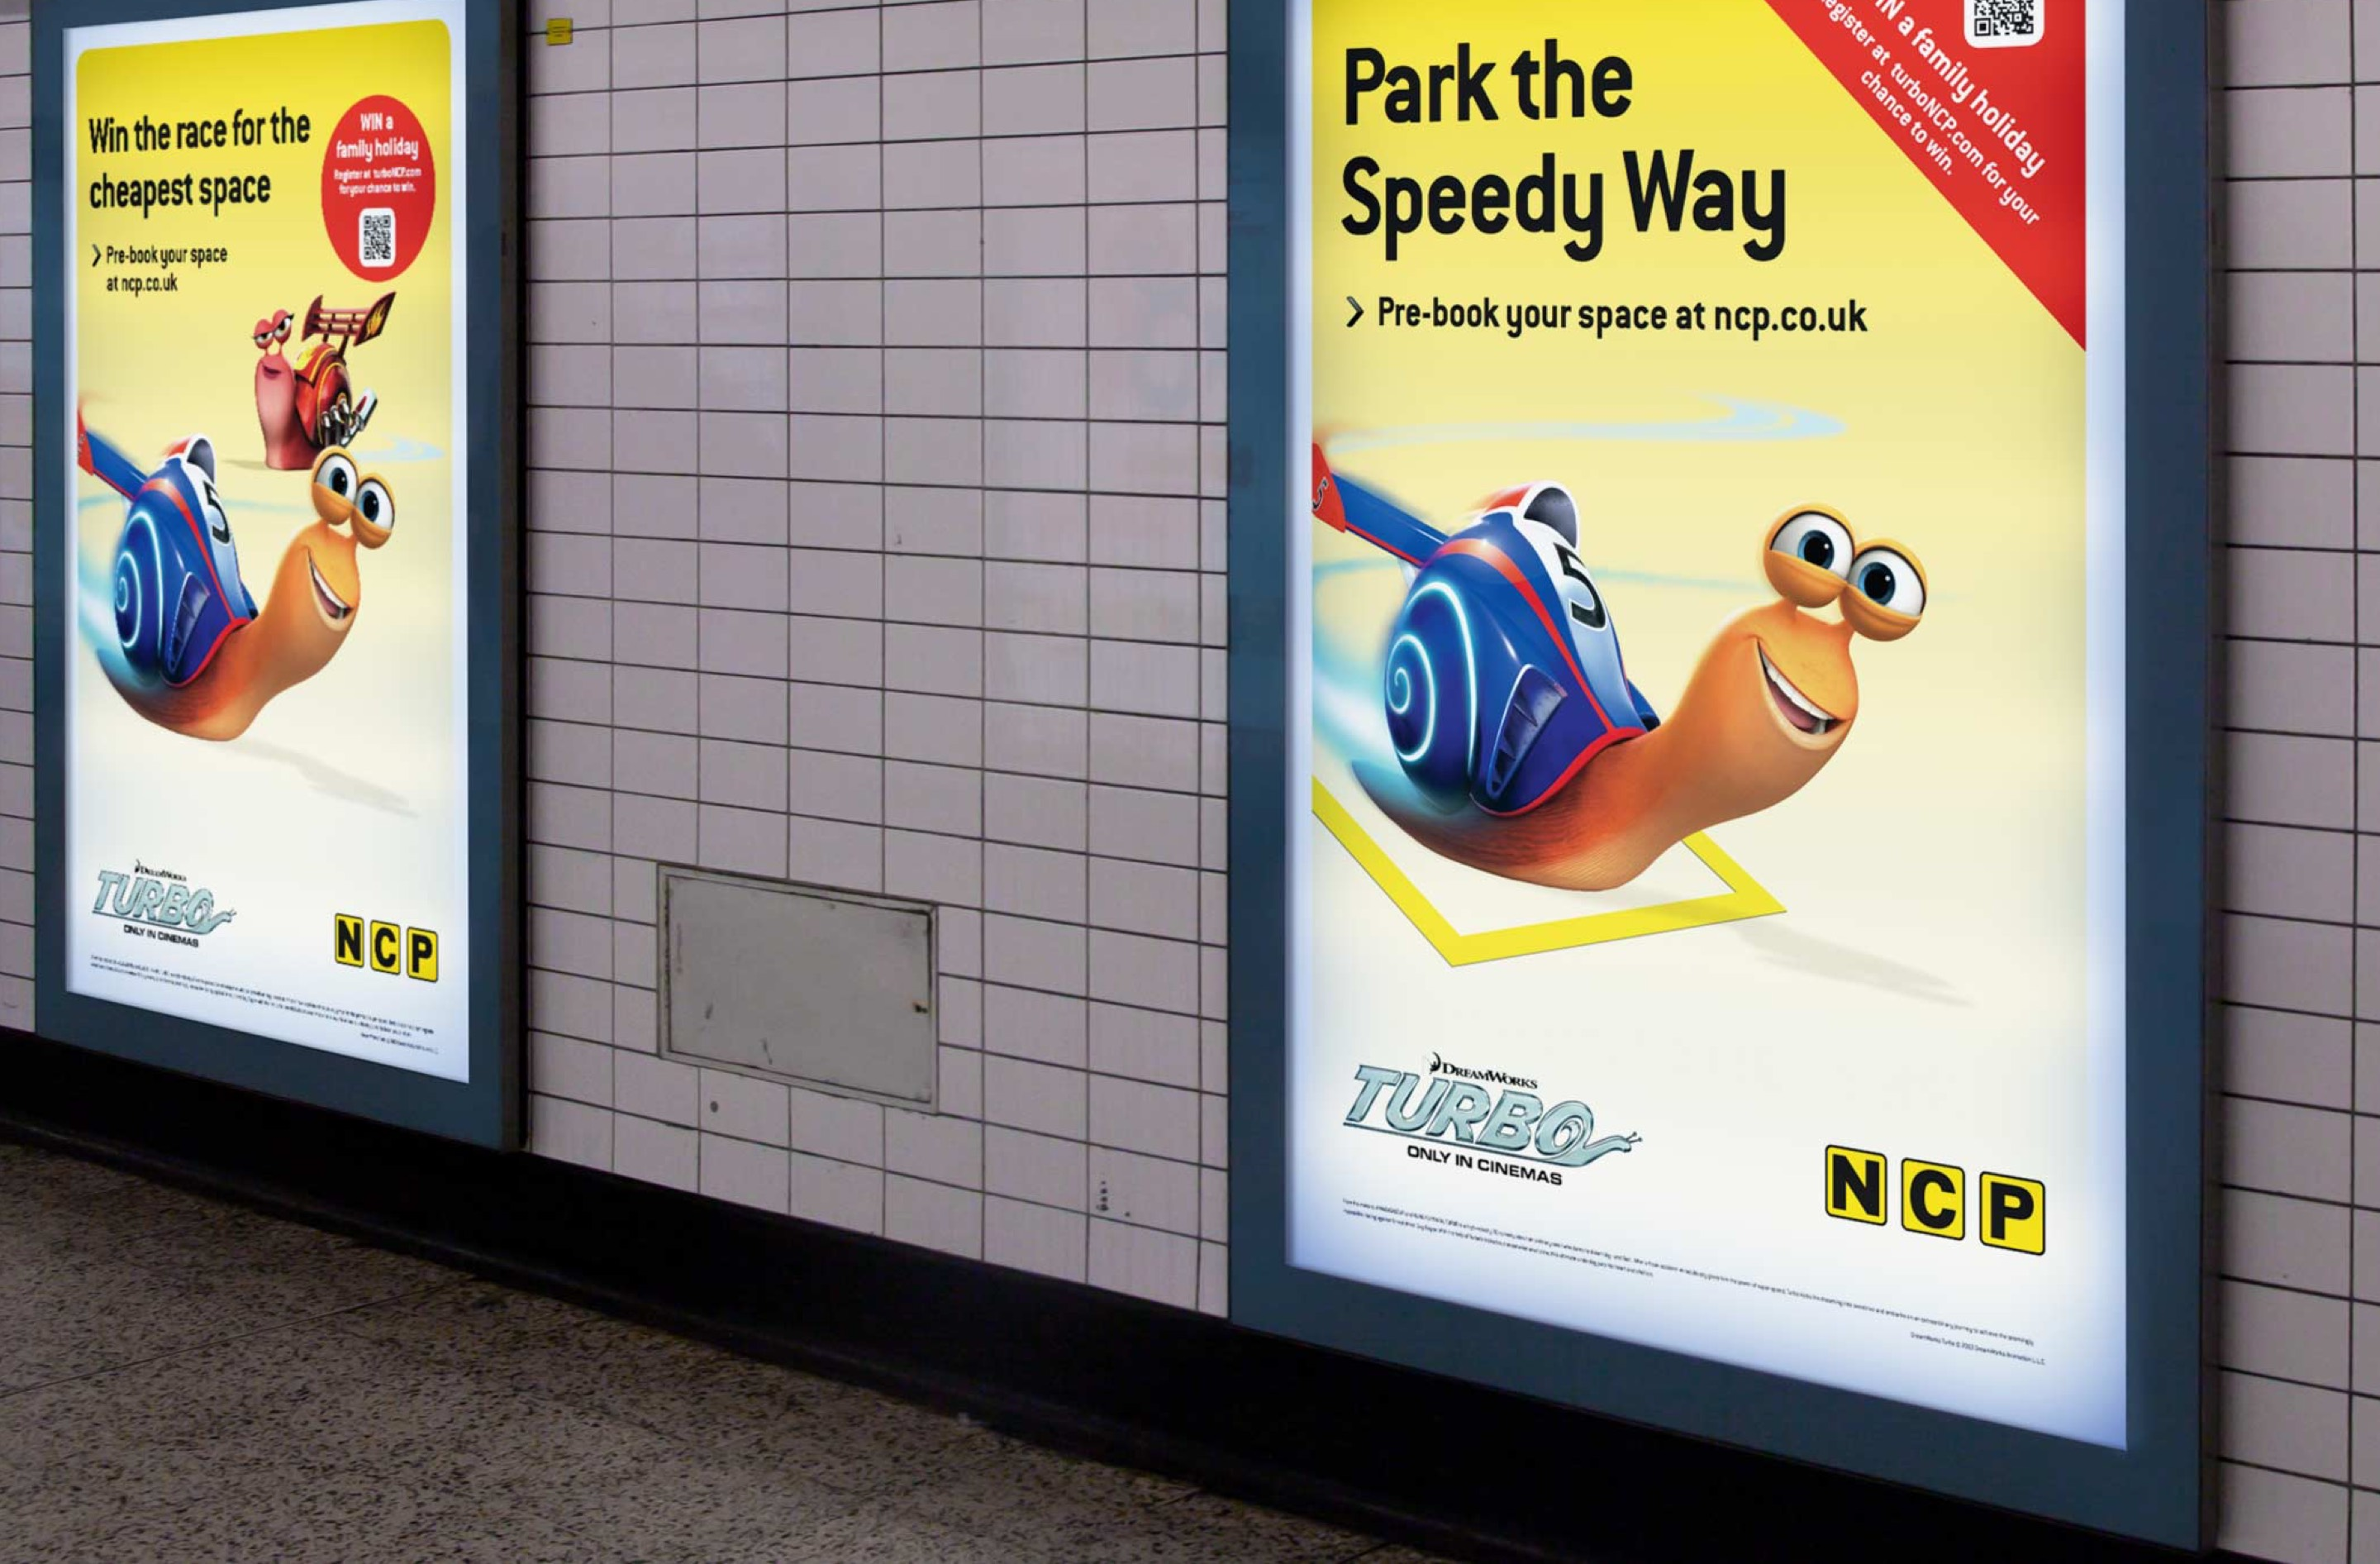 We designed eye-catching print advertising design for NCP campaign